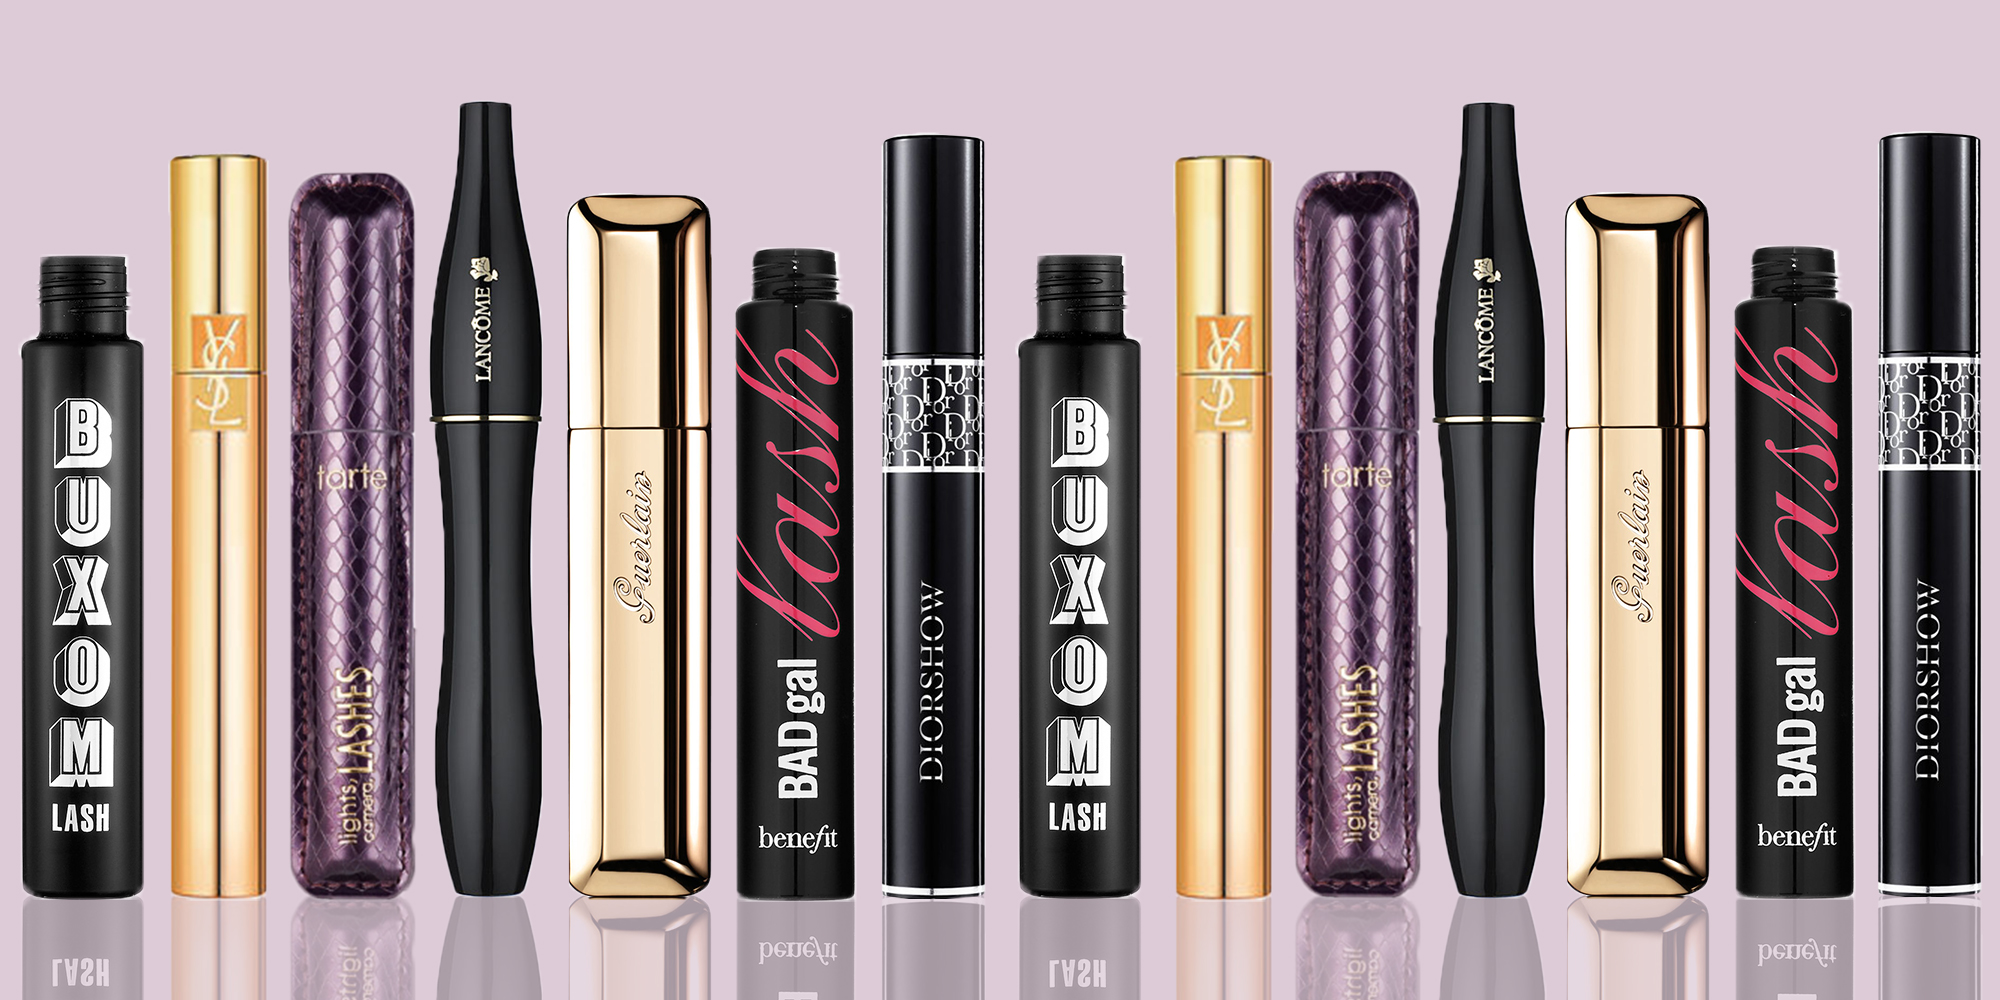 15 best mascara reviews in 2017 best selling iconic mascaras of all time. Black Bedroom Furniture Sets. Home Design Ideas